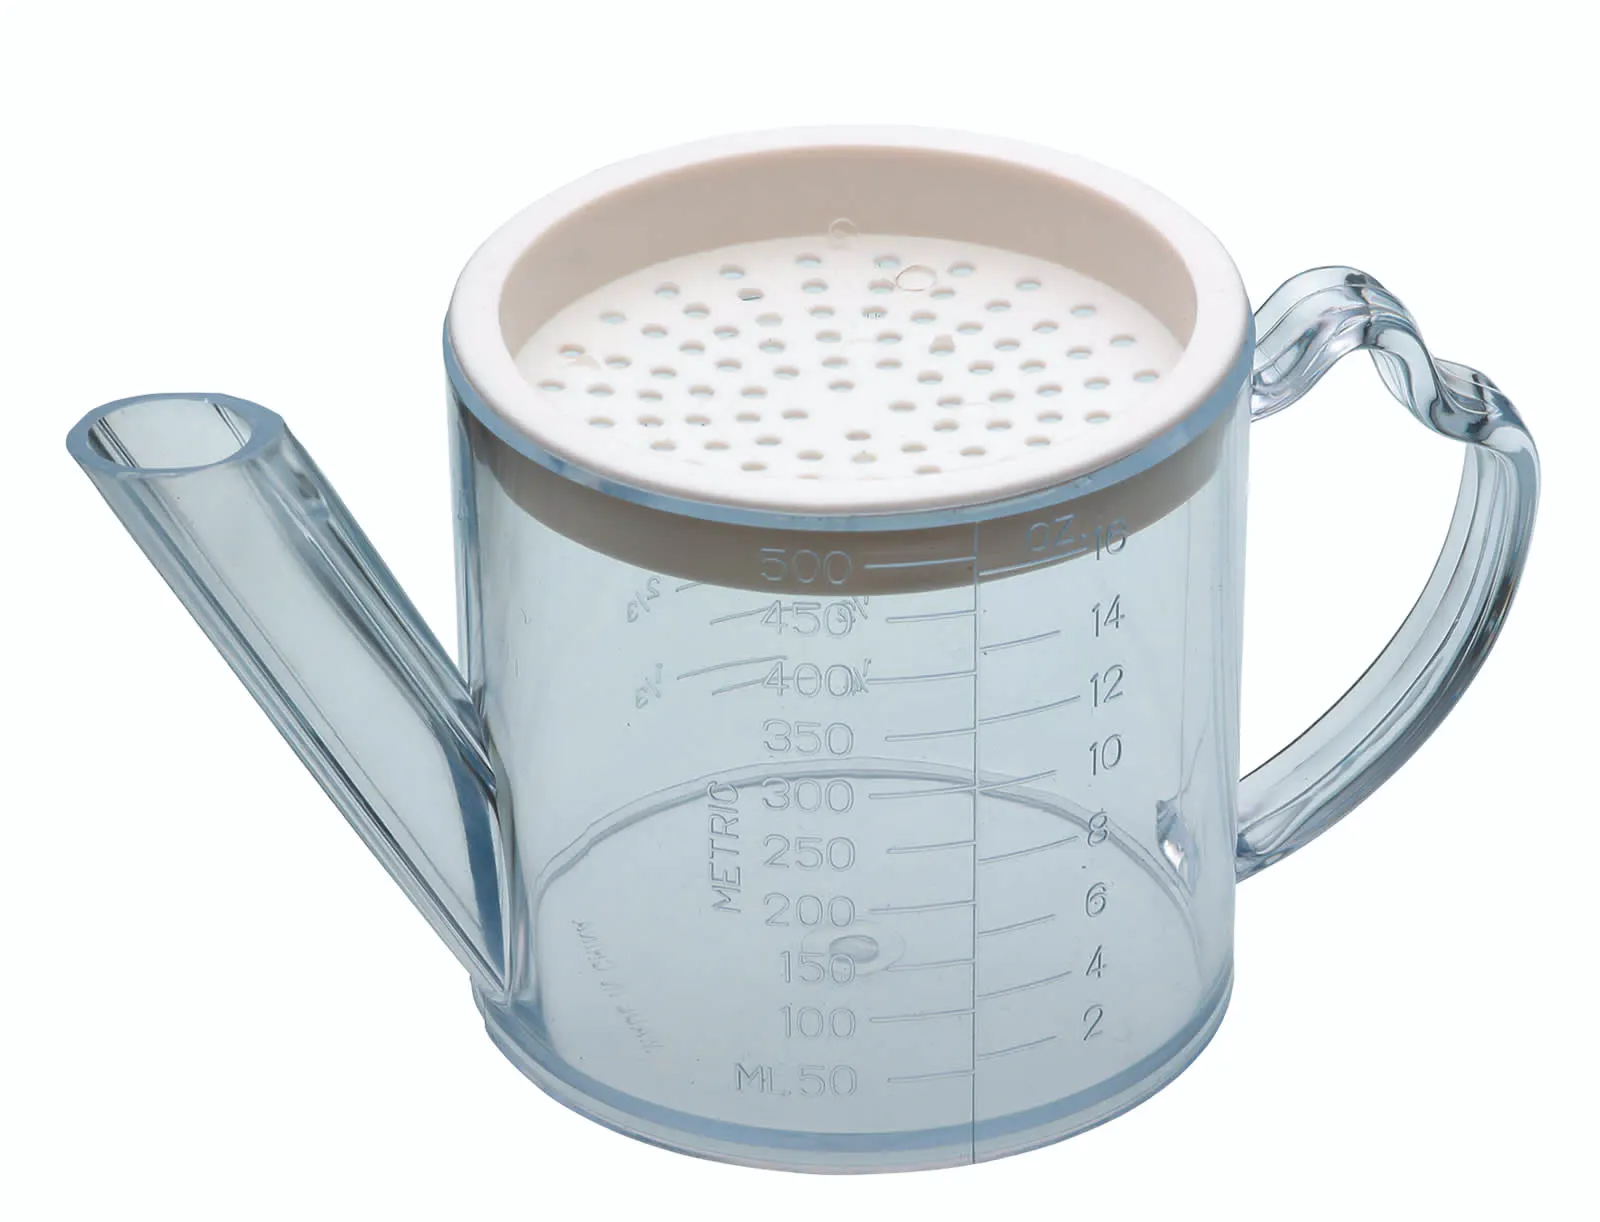 KitchenCraft 500ml Gravy / Fat Separator and Measuring Jug